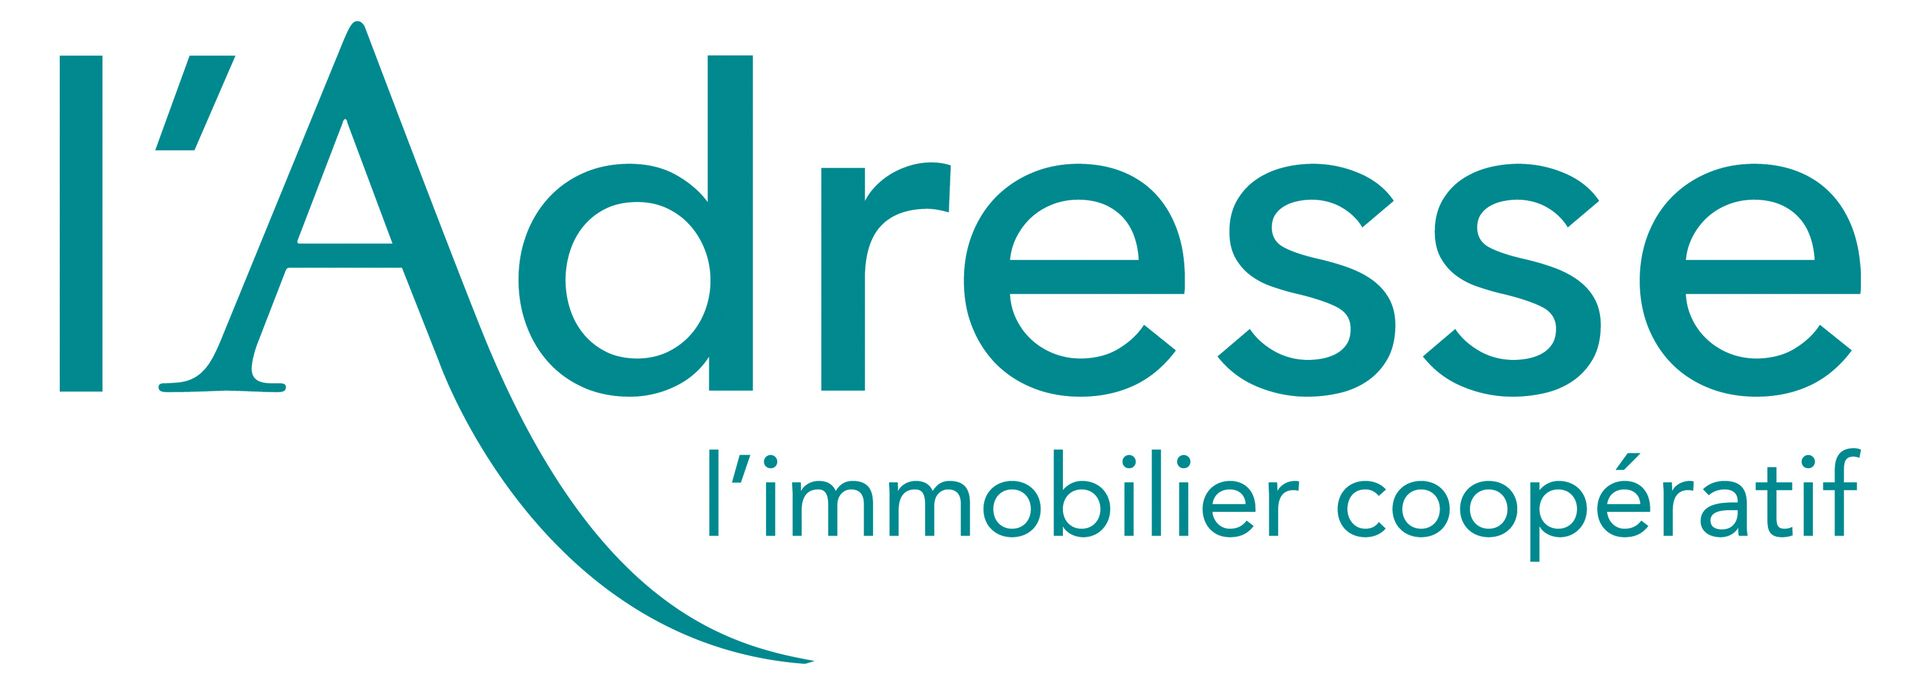 L'Adresse Angoulême Immobilier agence immobilière